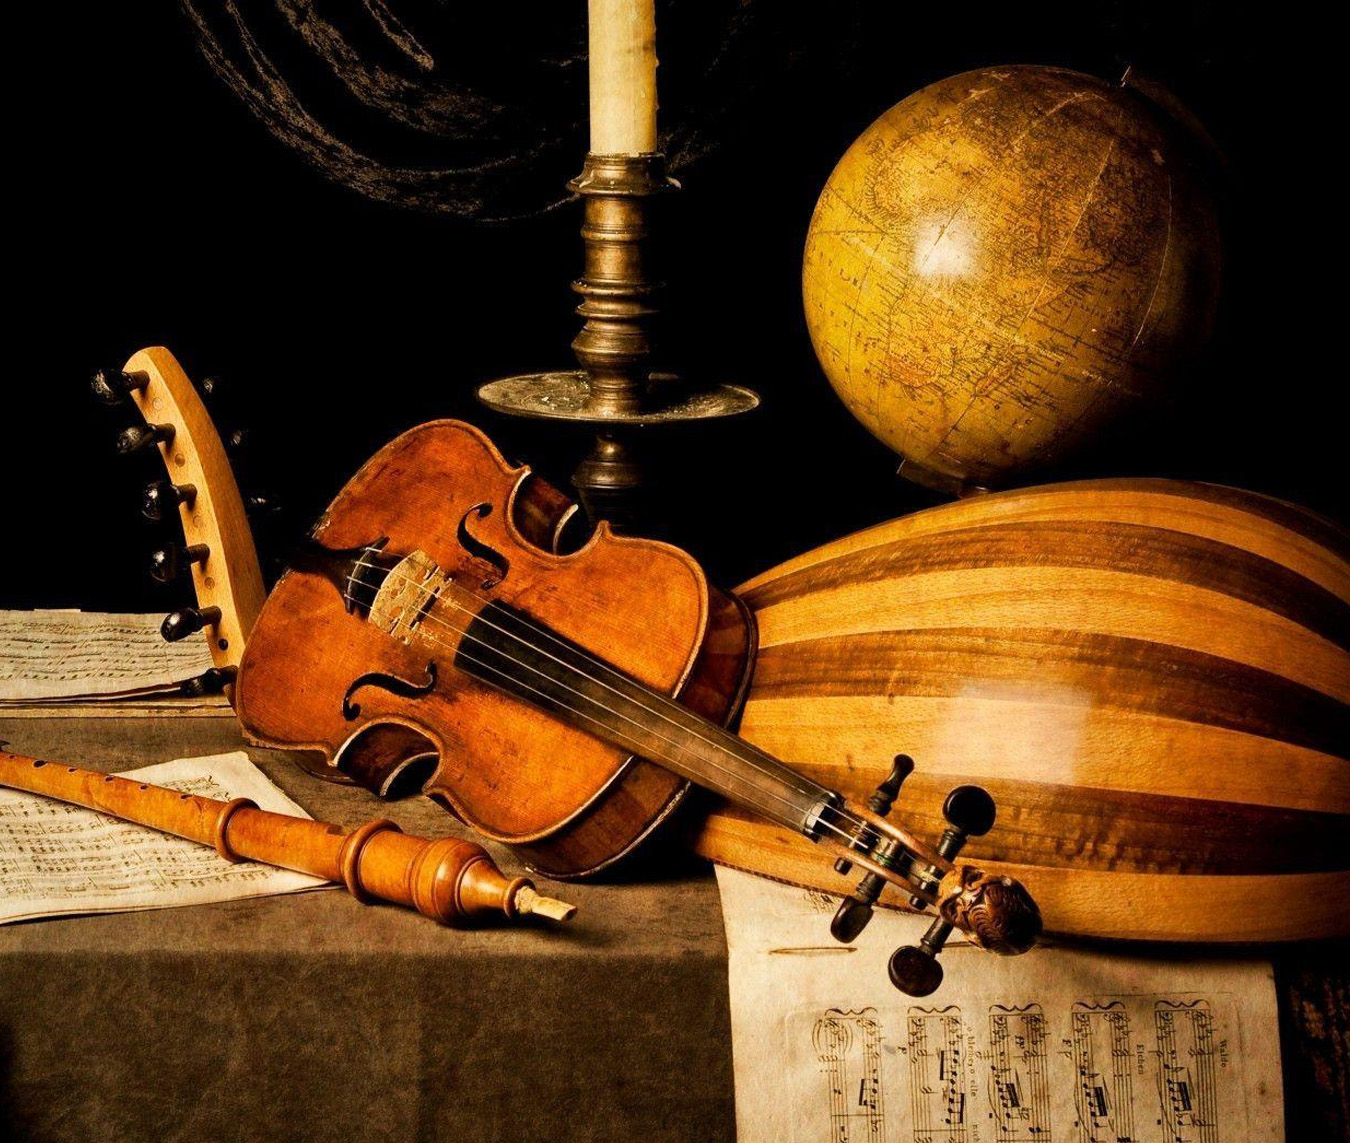 The essence of Hindustani classical music